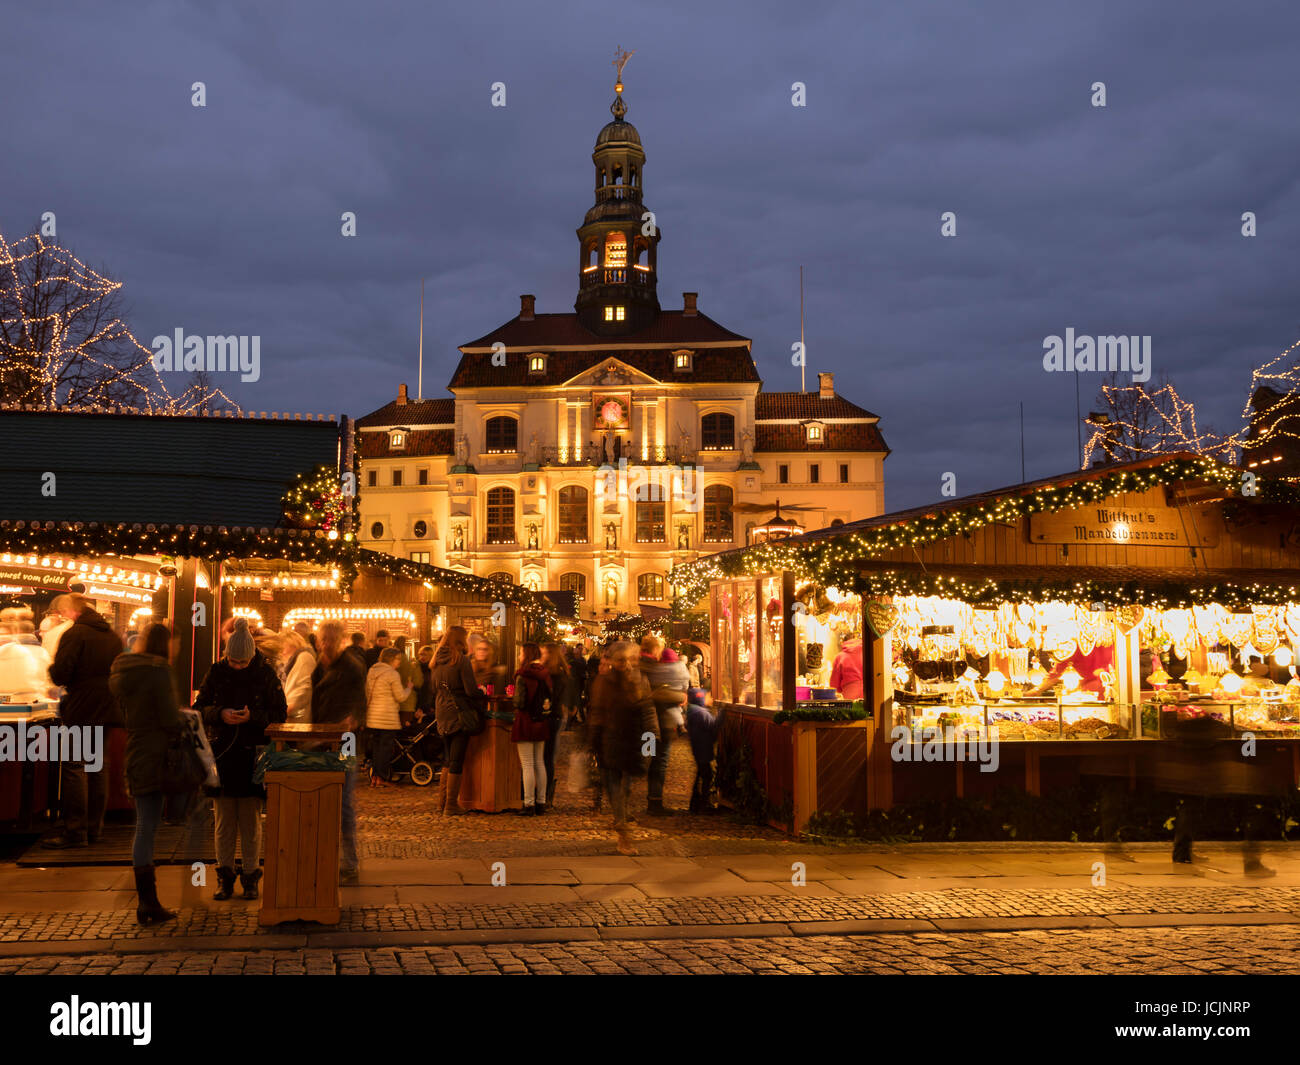 Town Hall, Christmas Market, market square, Lüneburg, Lower Saxony, Germany Stock Photo